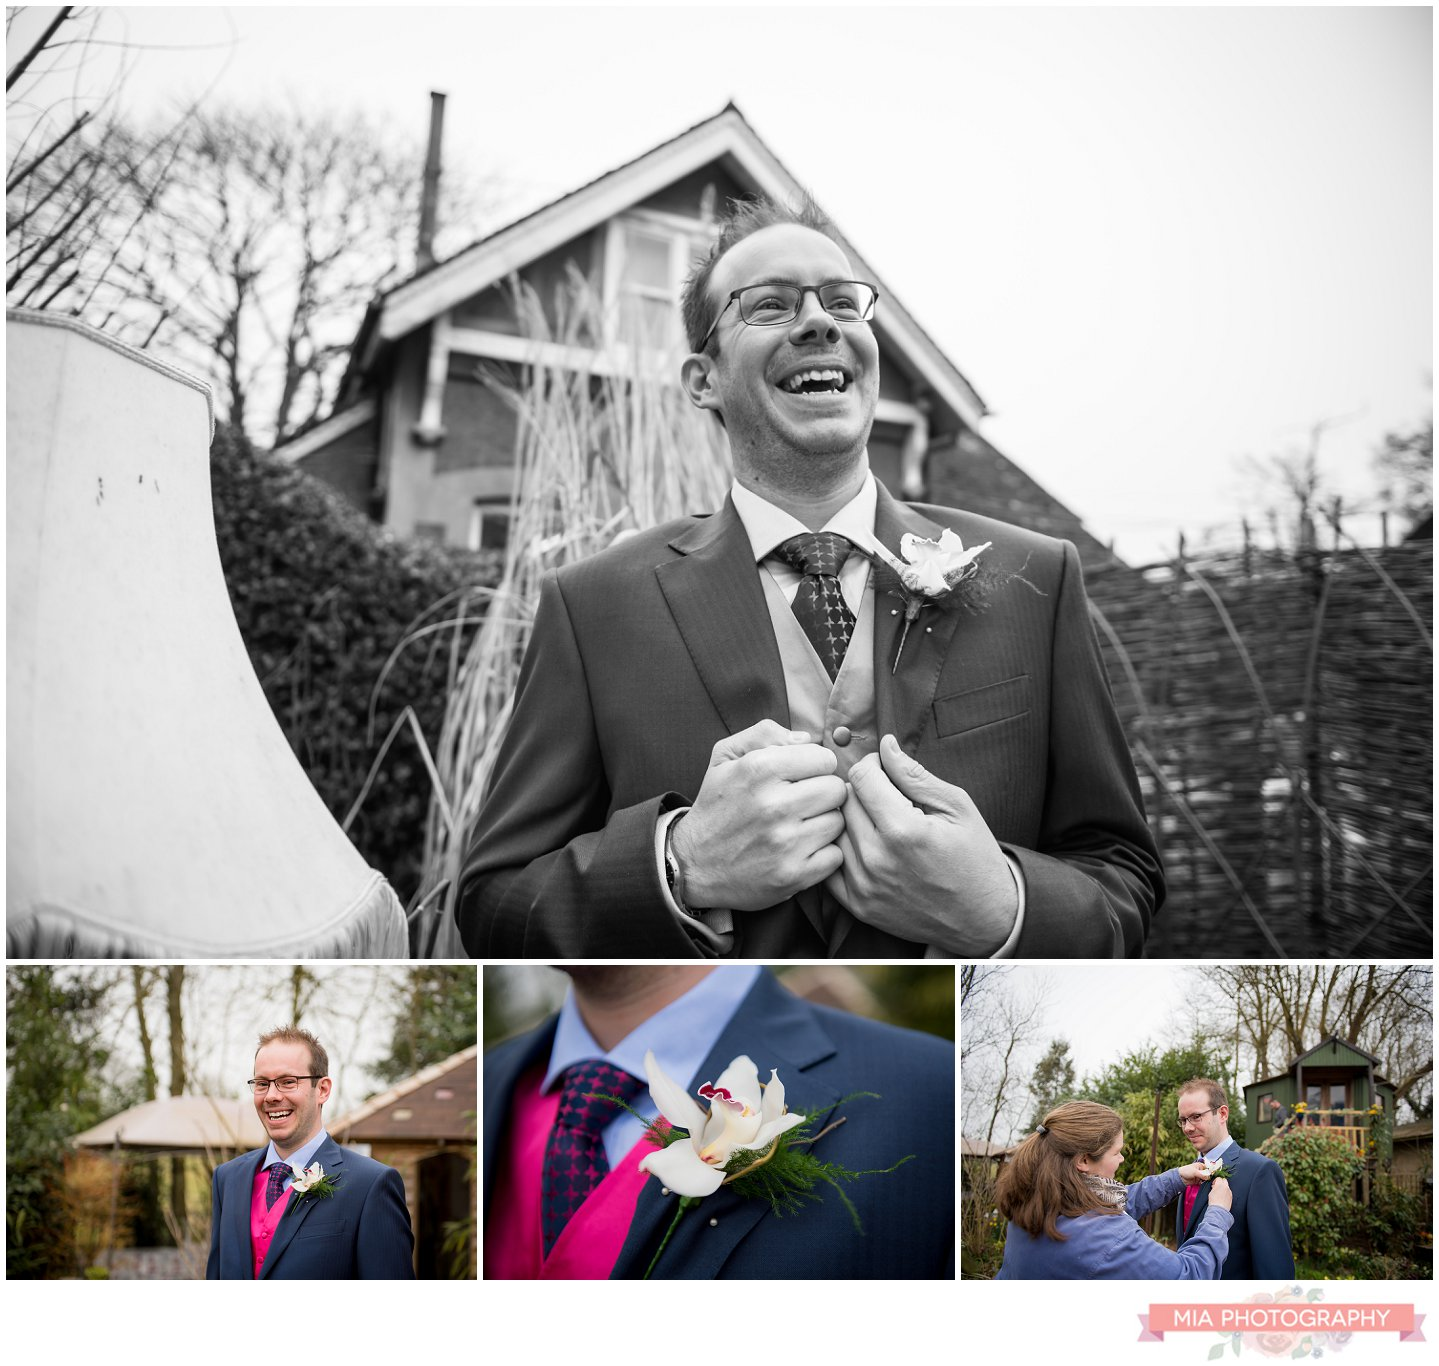 Groom at Fanny's Farm shop wedding